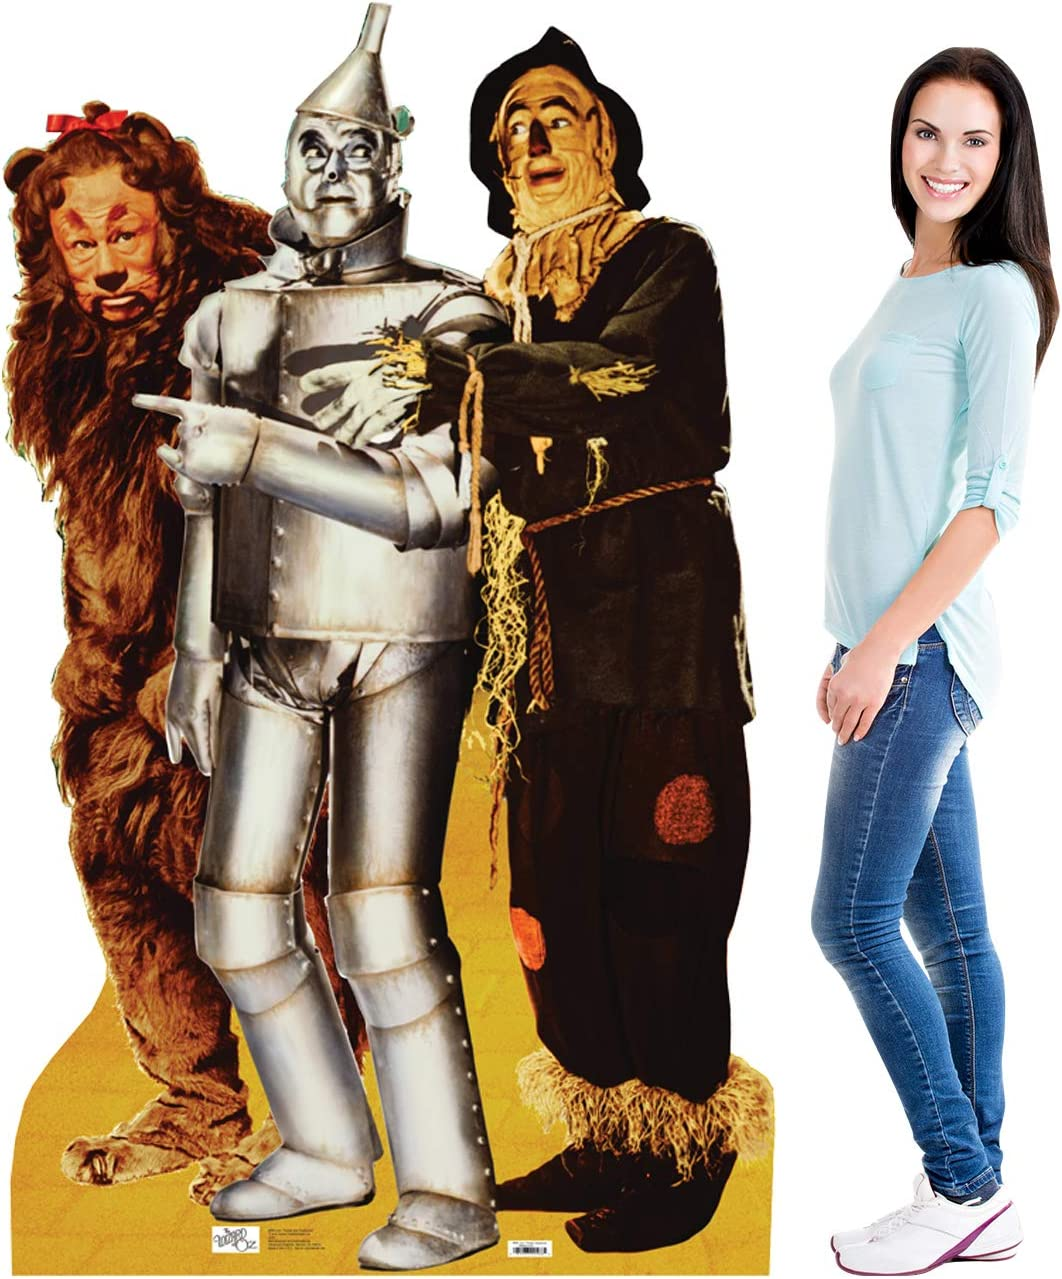 148 x 55 x 148 cm Star Cutouts Ltd Dorothy Follow The Yellow Brick Road The Wizard of Oz Life Size Cardboard Cut Out with Mini Table top Multi-Colour